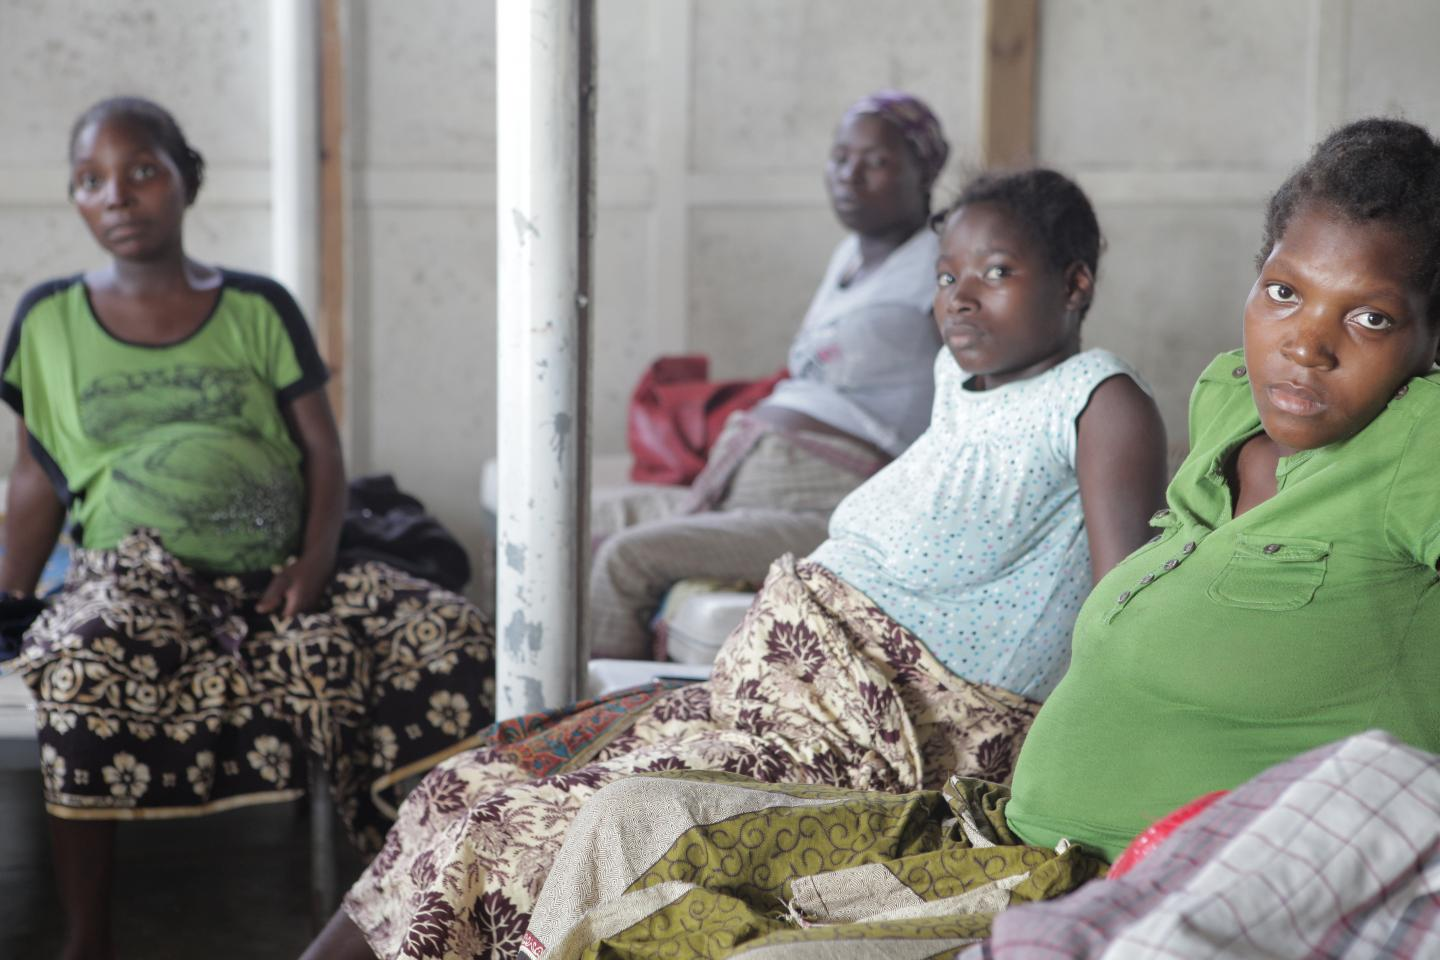 Pregnant Women at Health Care Clinic